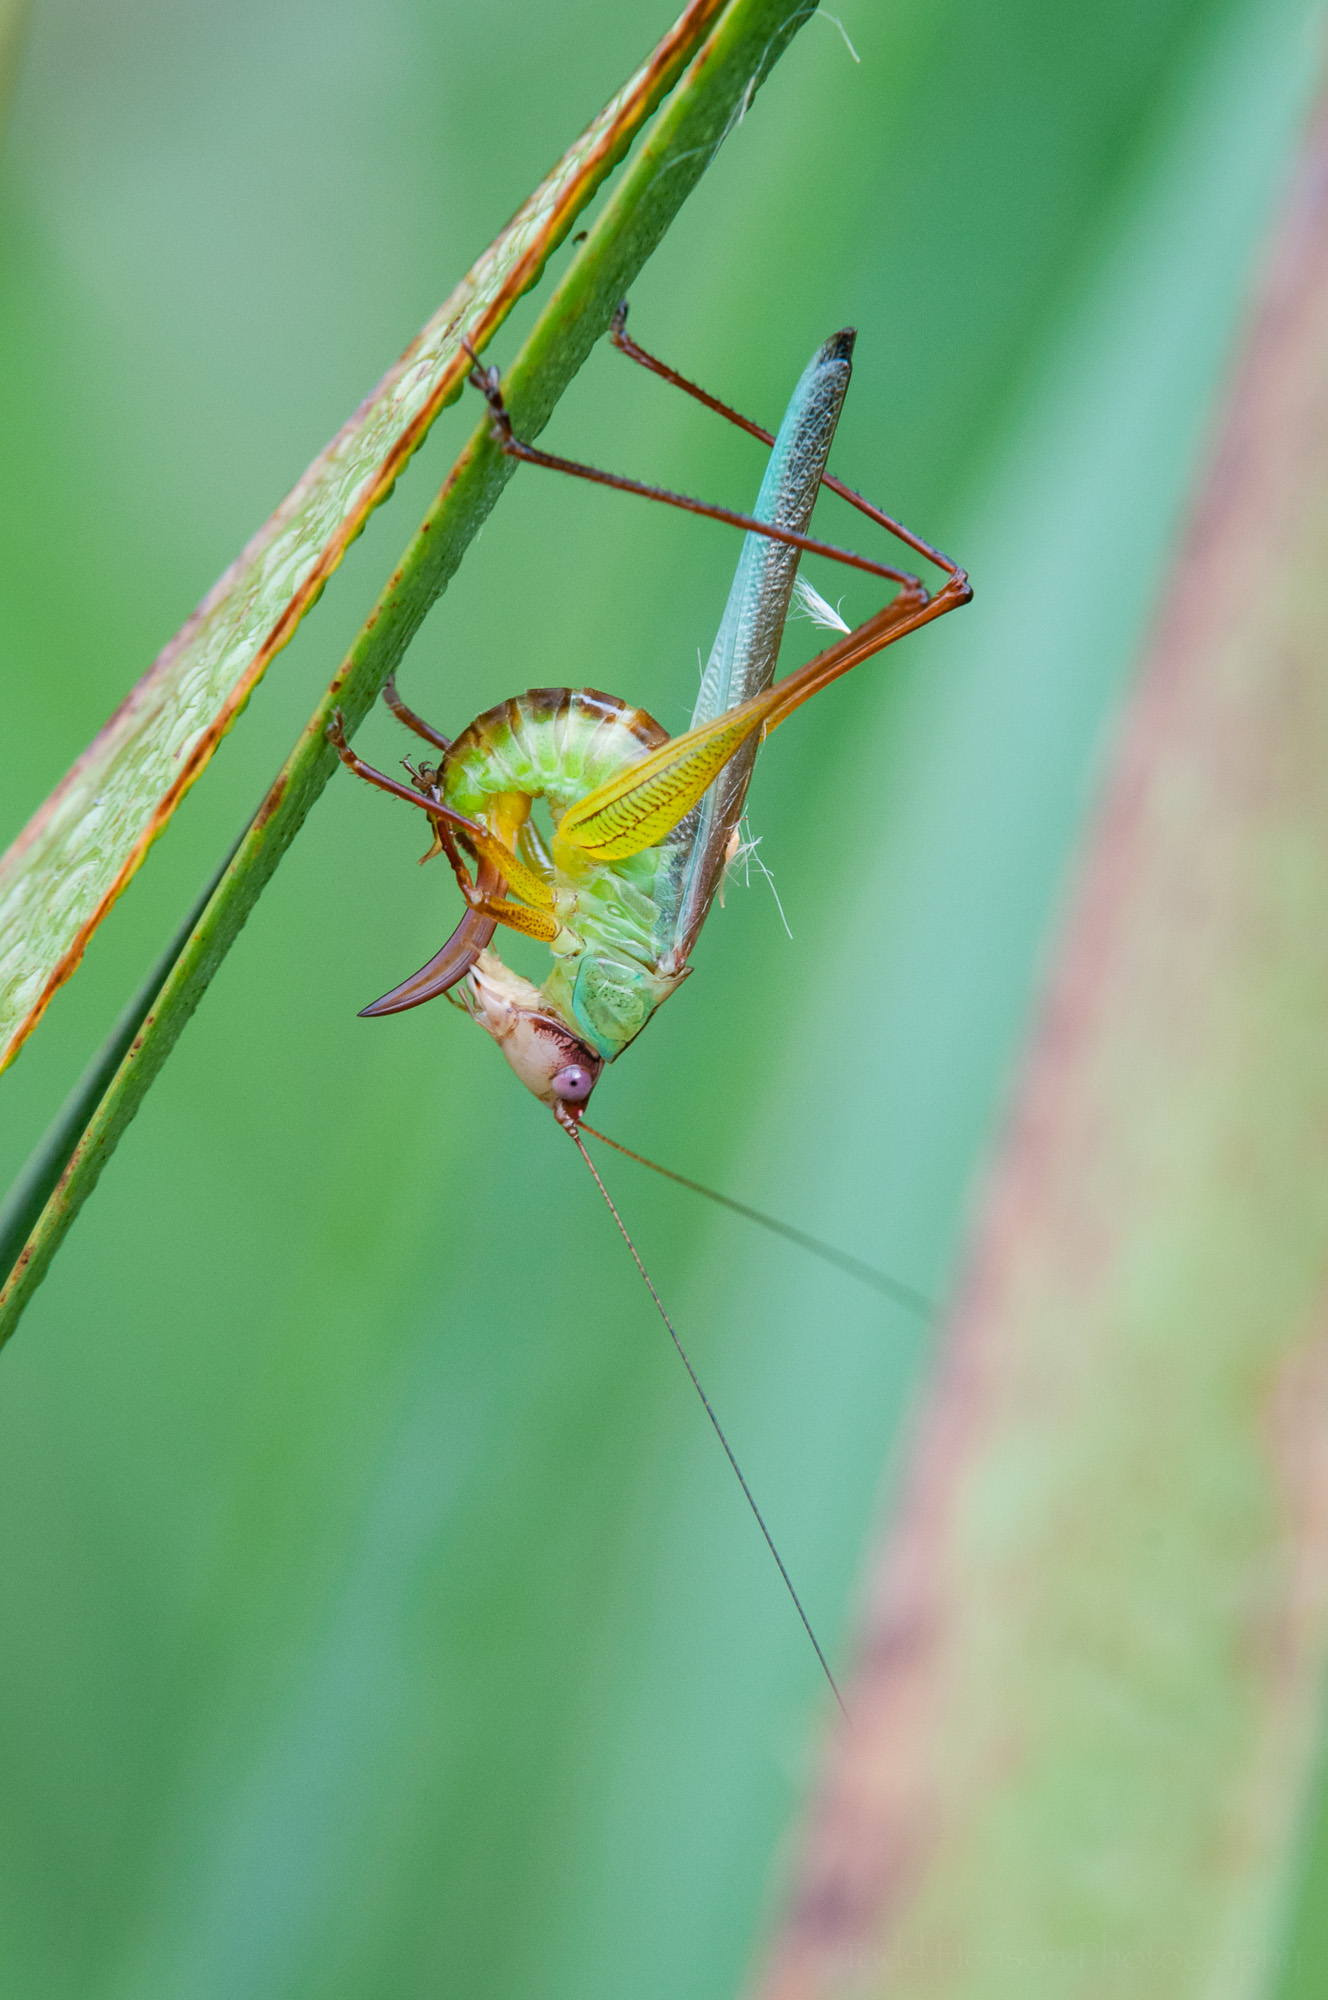 Third of a sequence of a katydid cleaning itself.